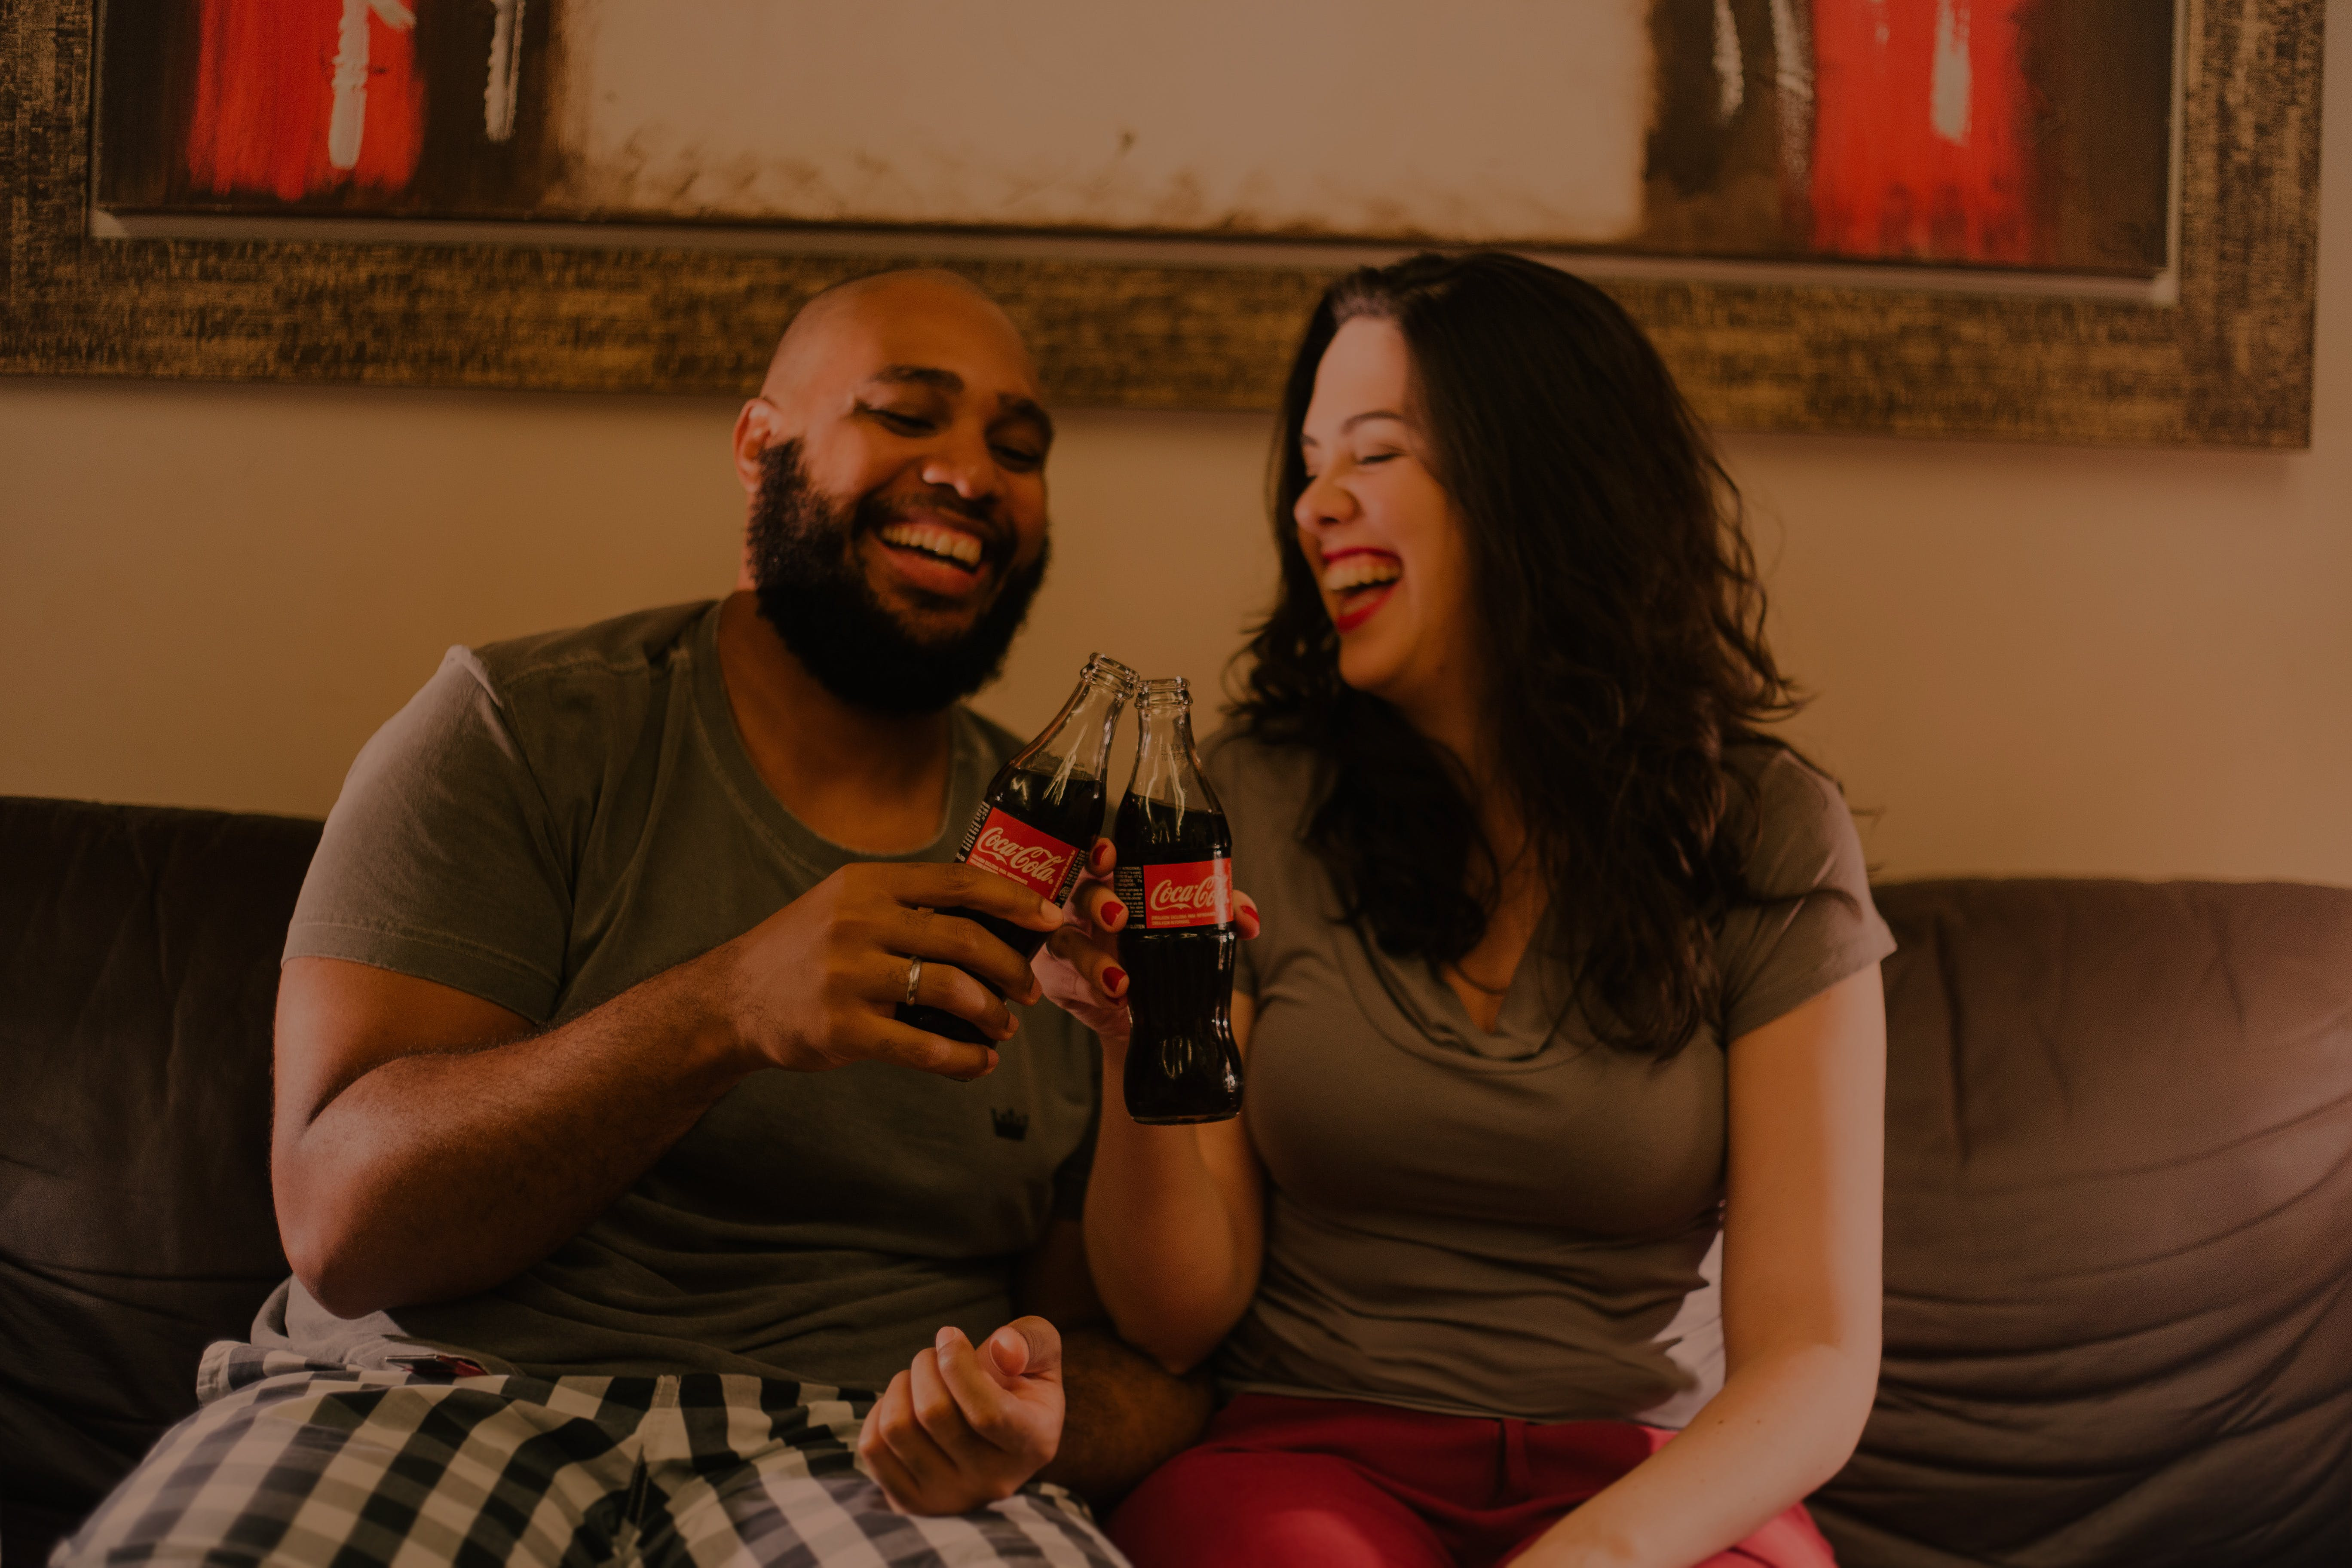 Two Laughing Man and Woman While Holding Coca-cola Glass Bottles